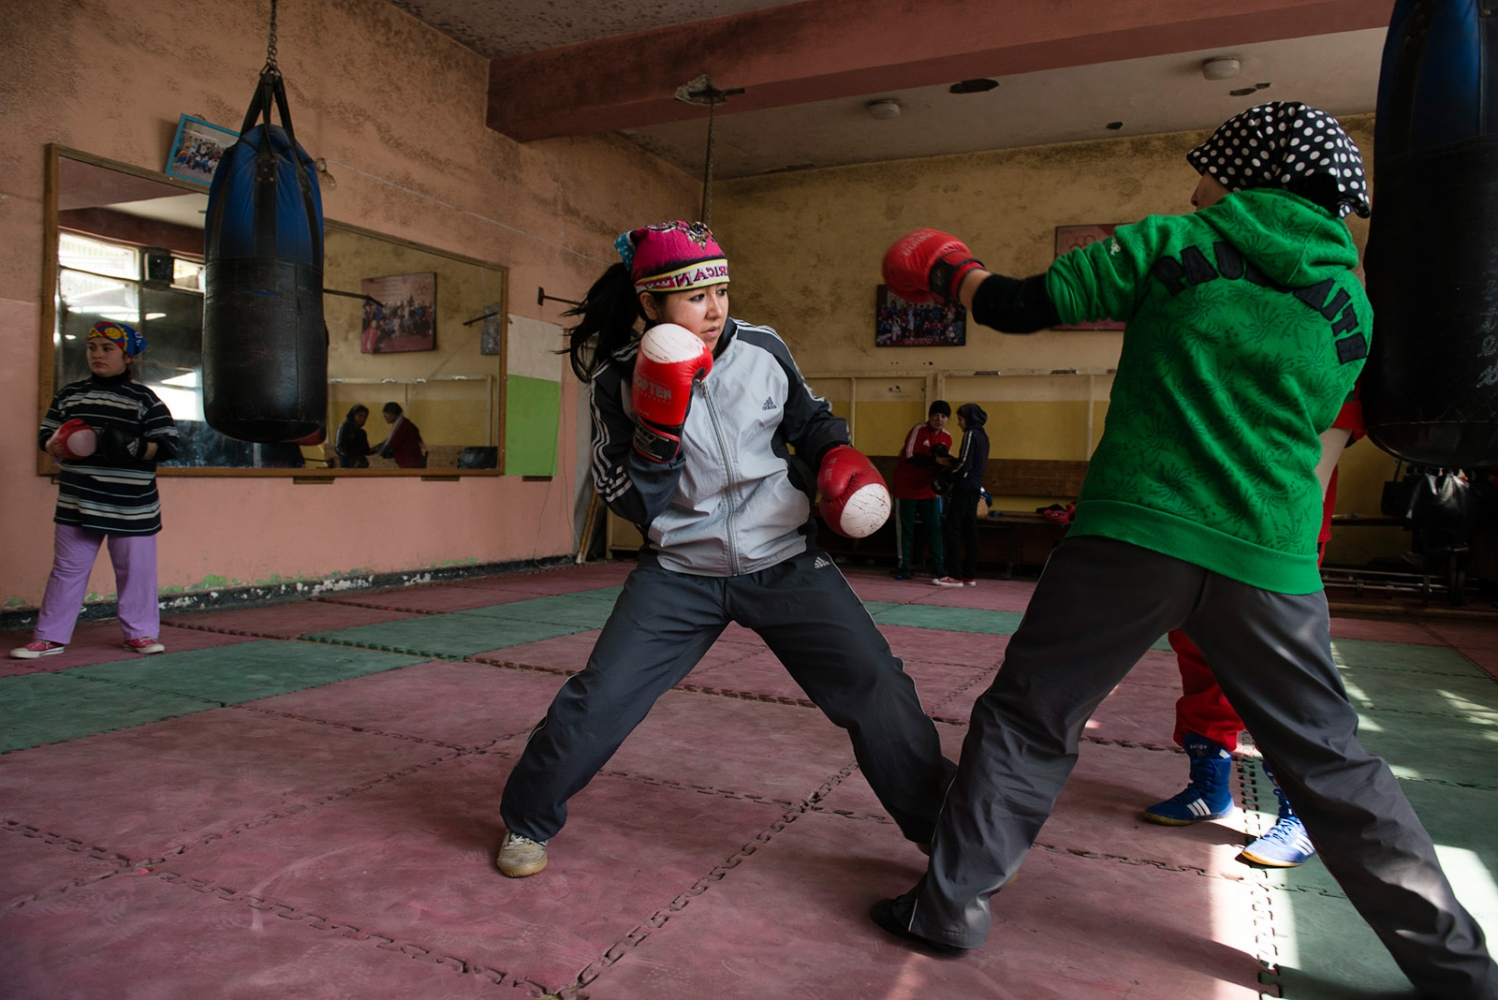 KABUL, AFGHANISTAN | 2015-02-28 | Members of afghan girls national boxing team practice and exercise weekly with their male coach, Mr Sharifi, at Olympic Stadium in Kabul. Most of them believe that boxing has given them confidence and independence in their personal life as well.